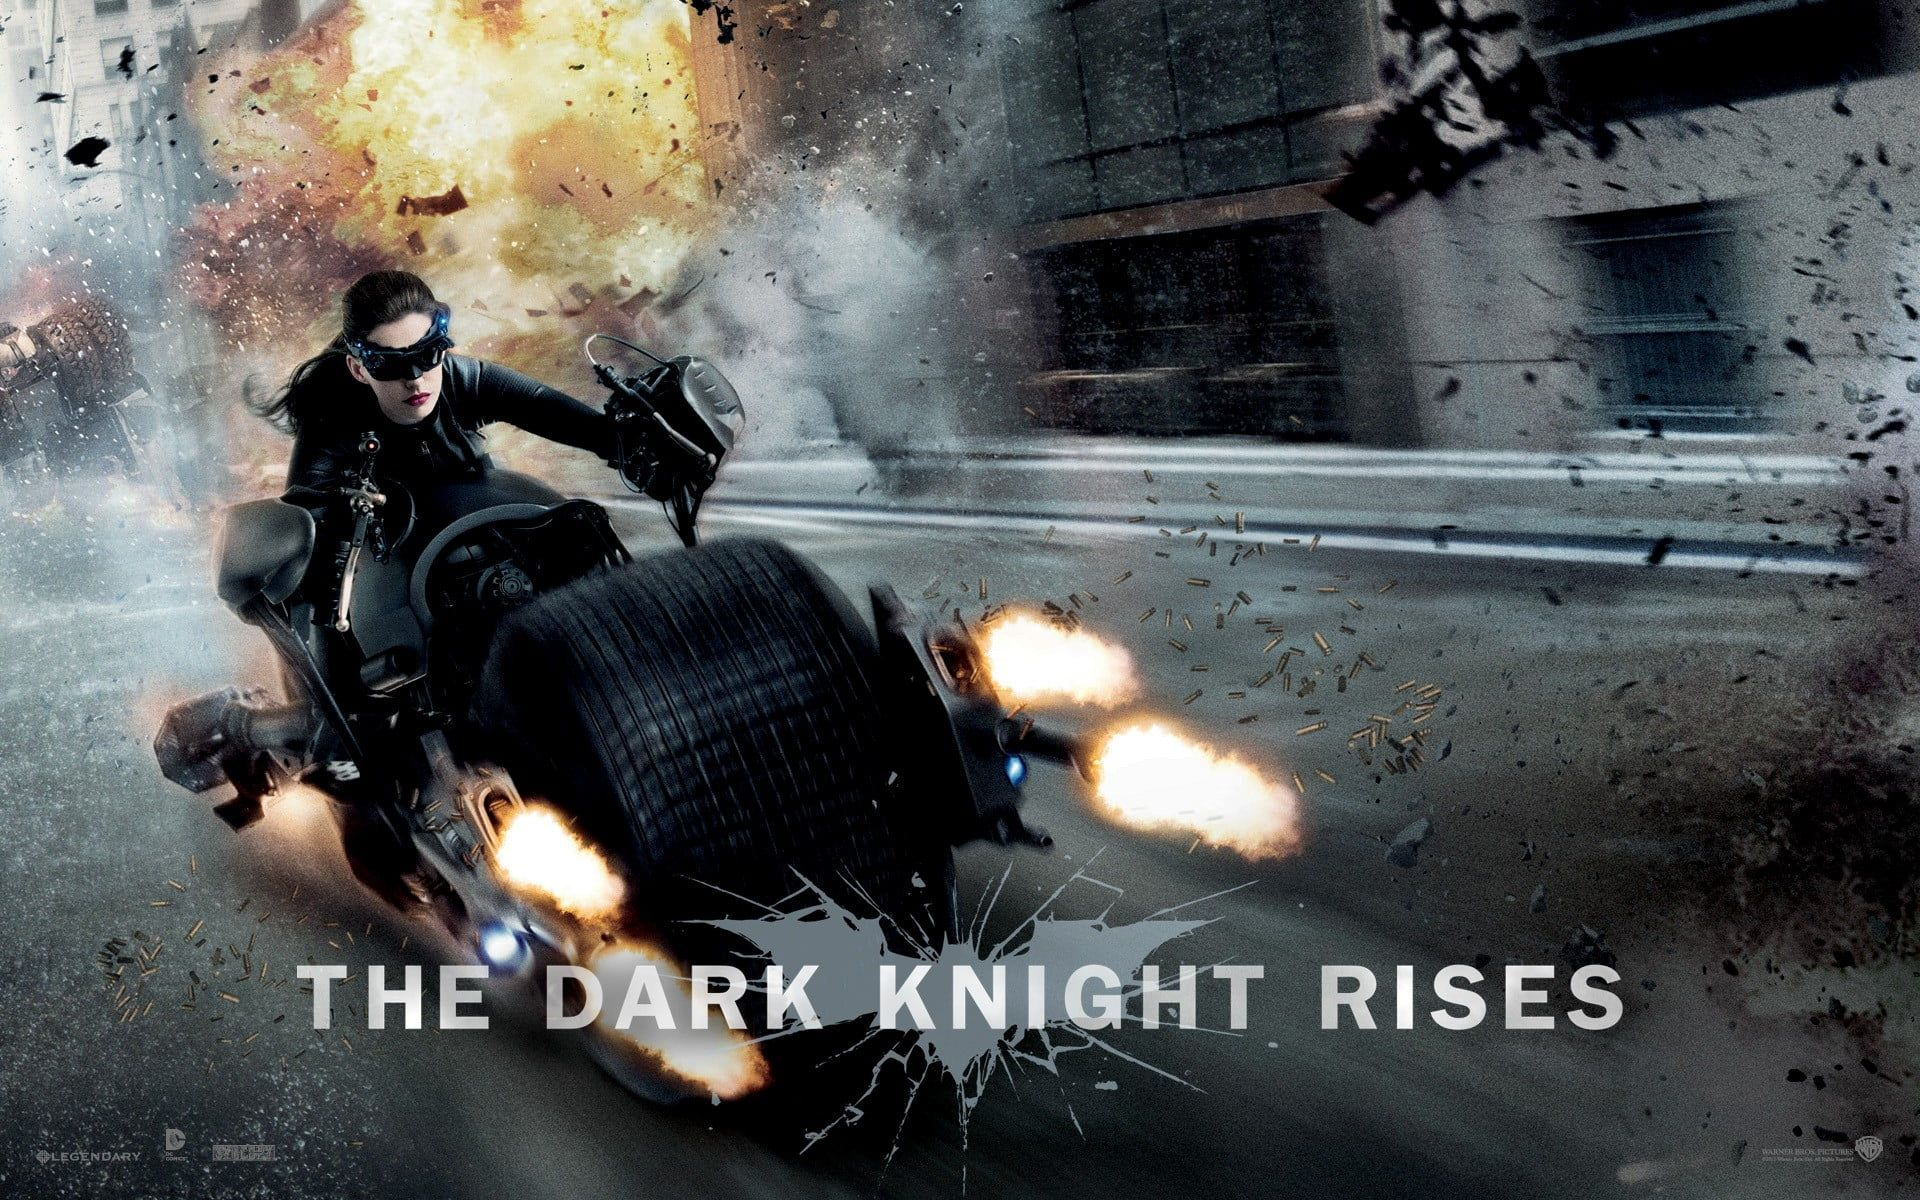 The Dark Knight Rises Catwoman Dc Comics Batpod Iphone 1920x1200